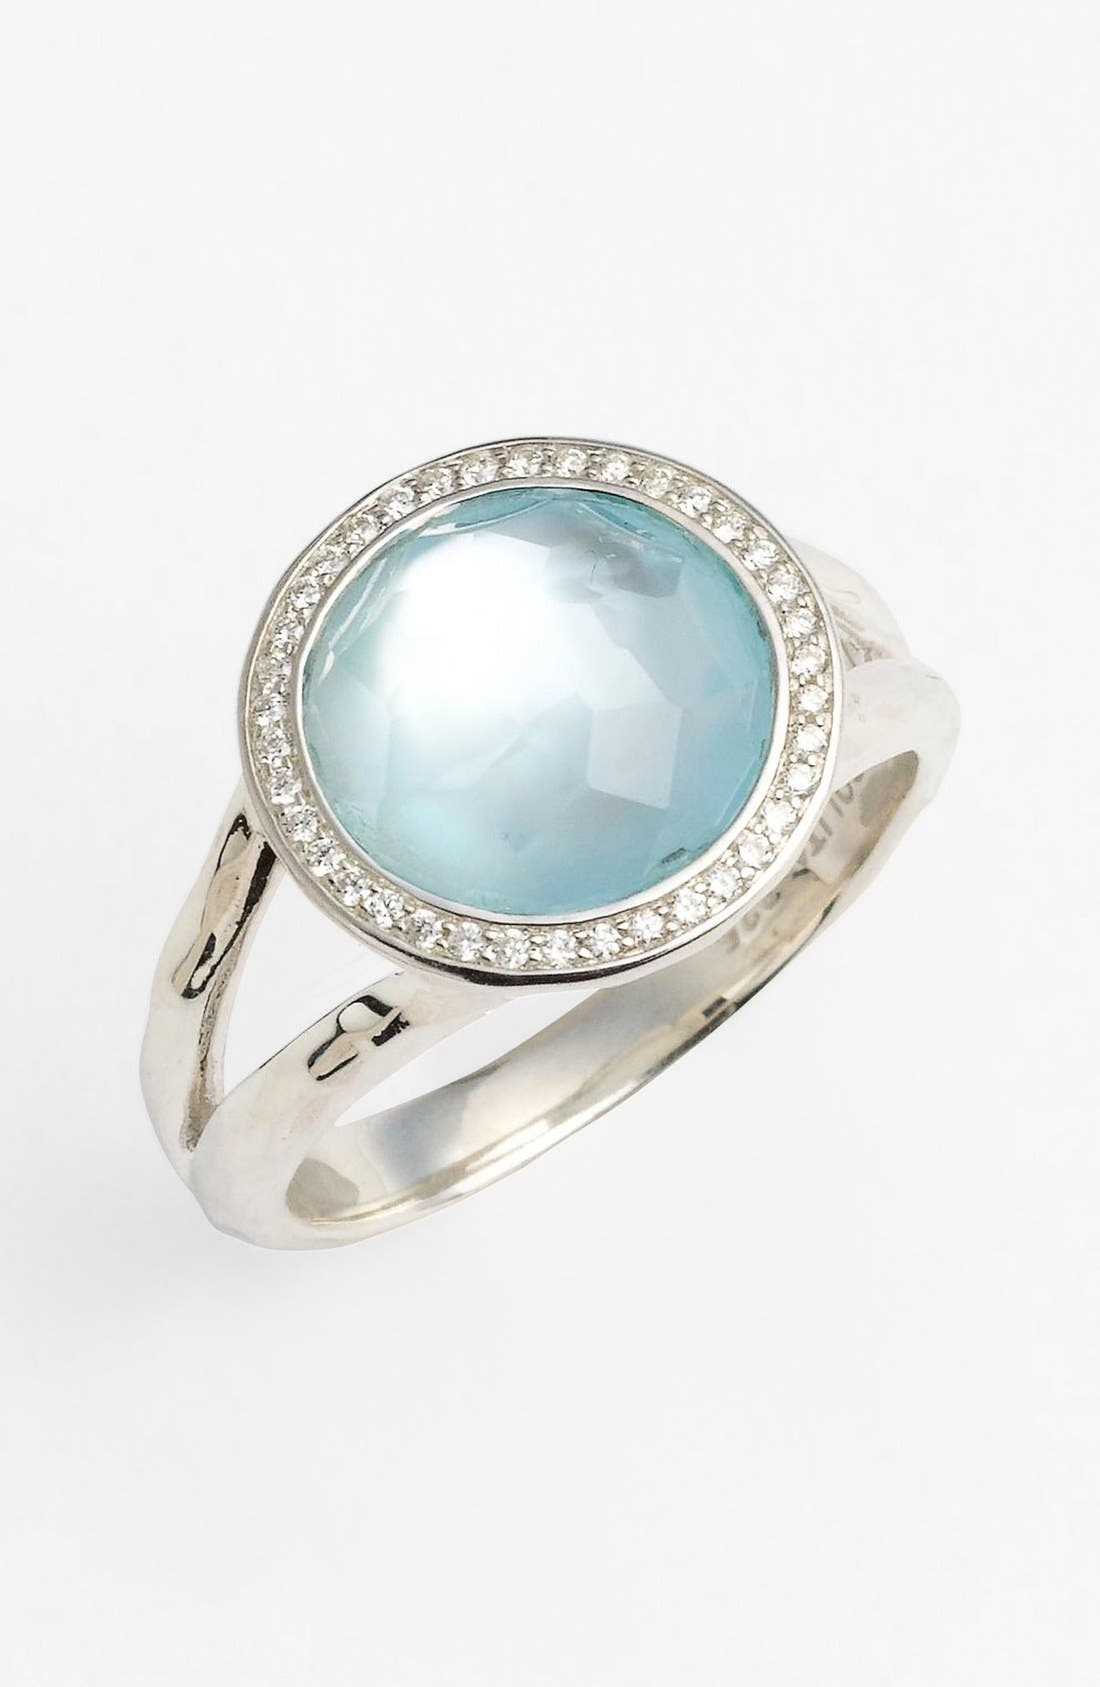 'Stella - Rock Candy' Cocktail Ring,                             Main thumbnail 1, color,                             Silver/ Blue Topaz